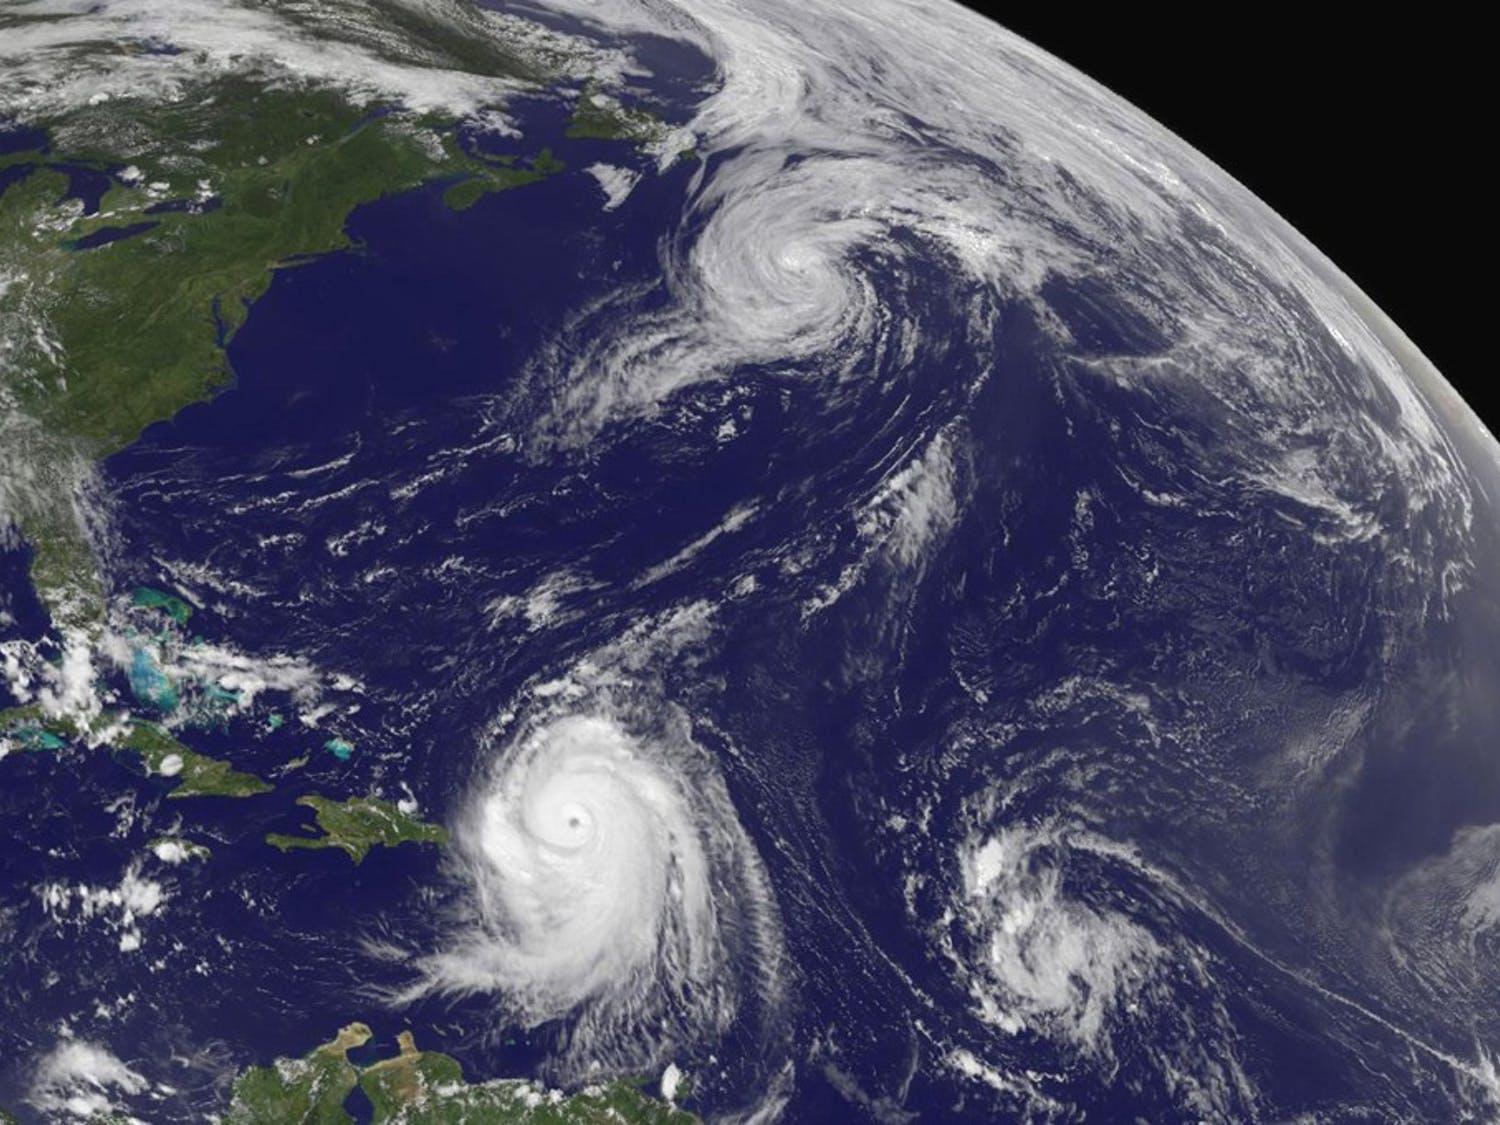 The current Geostationary Operational Environmental Satellite GOES-13 captured this image of Hurricane Danielle heading for the north Atlantic (top center), Hurricane Earl with a visible eye hitting the Leeward Islands (left bottom) and a developing tropical depression 8 (lower right) at 1:45 p.m. EDT on August 30, 2010. (NASA GOES Project/MCT)